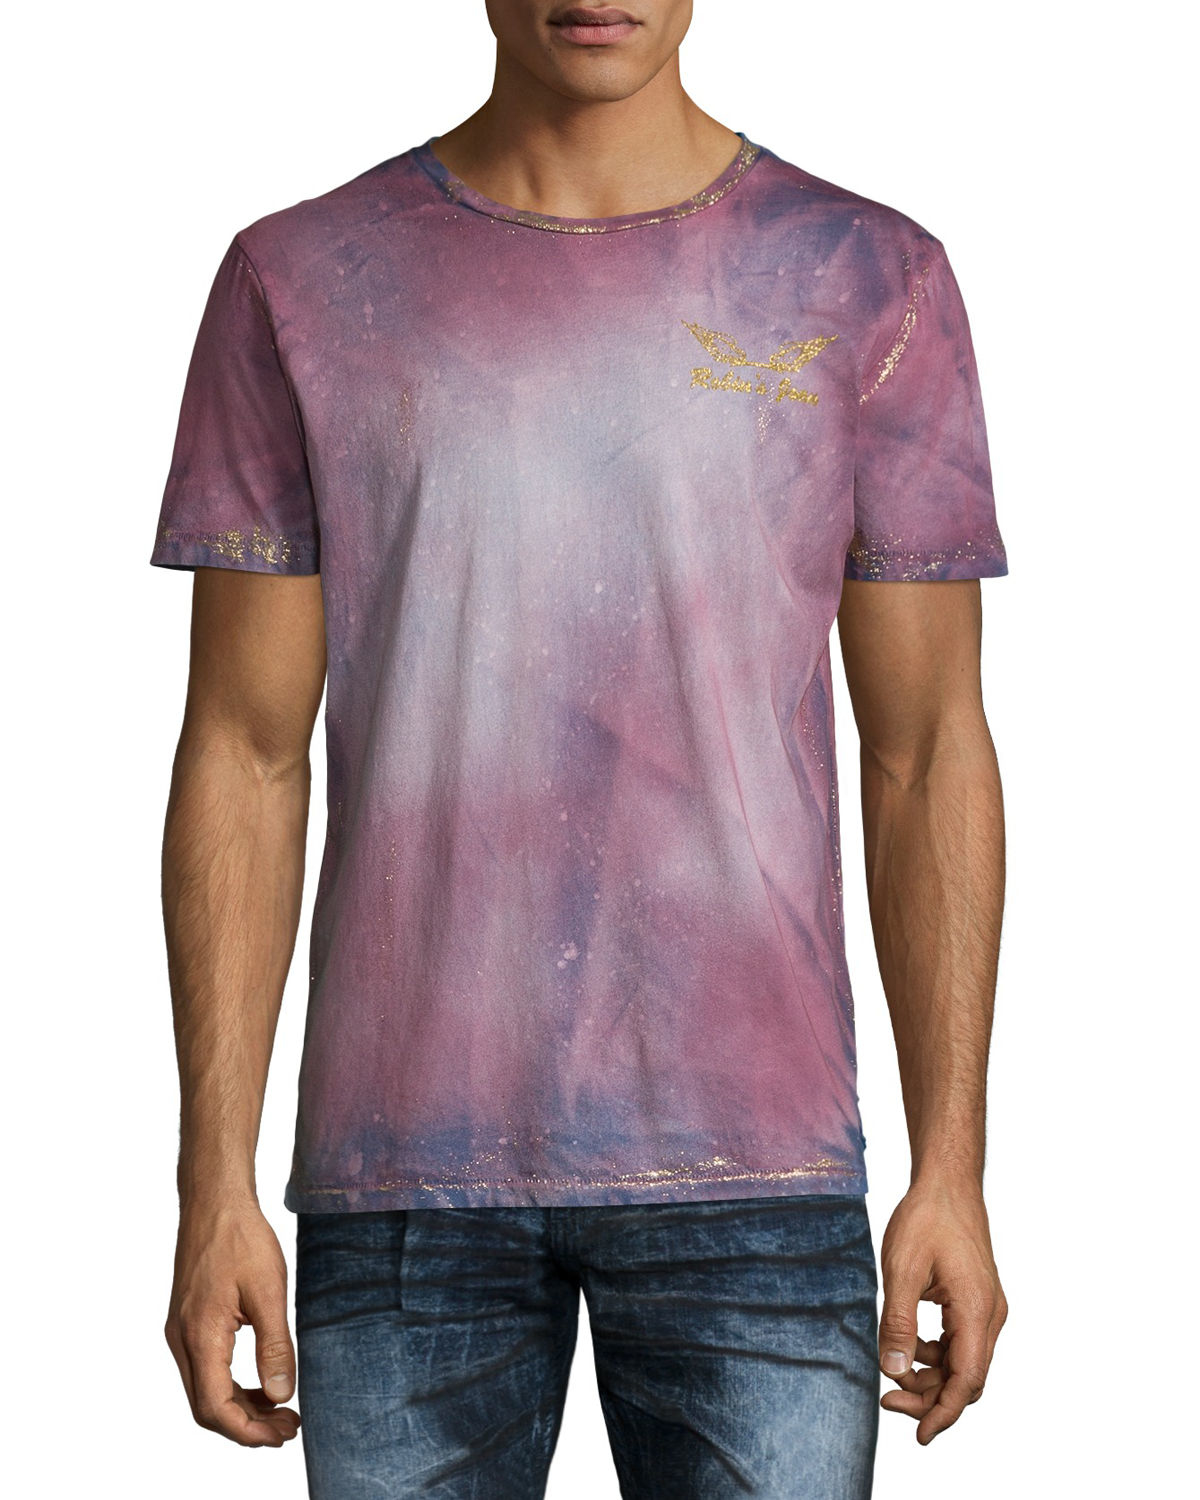 Hollister Oberbekleidung Returns Exchanges Hollister Pullover Hollister Hoodies Hollister Jeans: Robin's Jean Bleached Tie-dye Logo T-shirt In Purple For